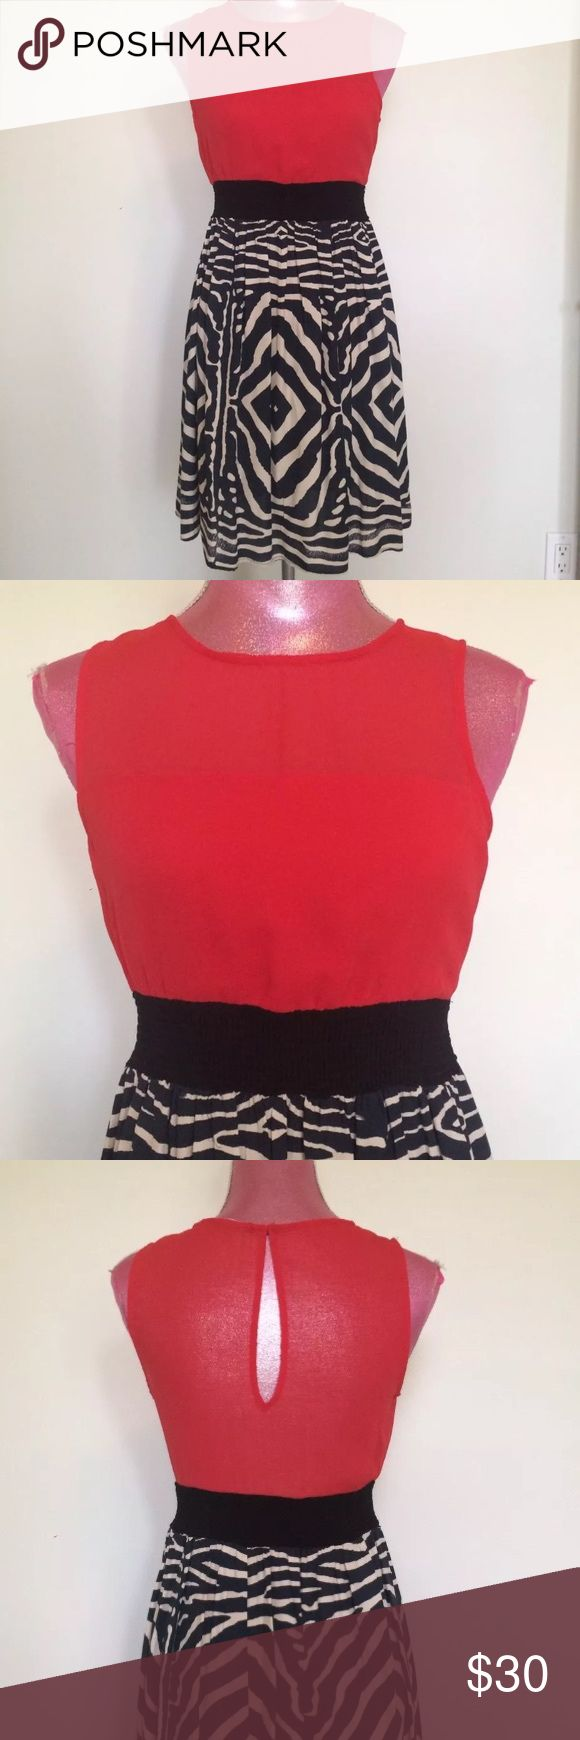 """Zara Dress Size medium - approx. measurements laying flat- 16"""" W across chest - 34 1/2"""" L shoulder to hemline  Material tag removed - Top portion poly/Crepe? Skirting rayon? - Red, black and Beige - Smocked elastic stretch banded waist - keyhole back with single button closure  Excellent pre-owned condition with no stains, tears or odors Zara Dresses"""